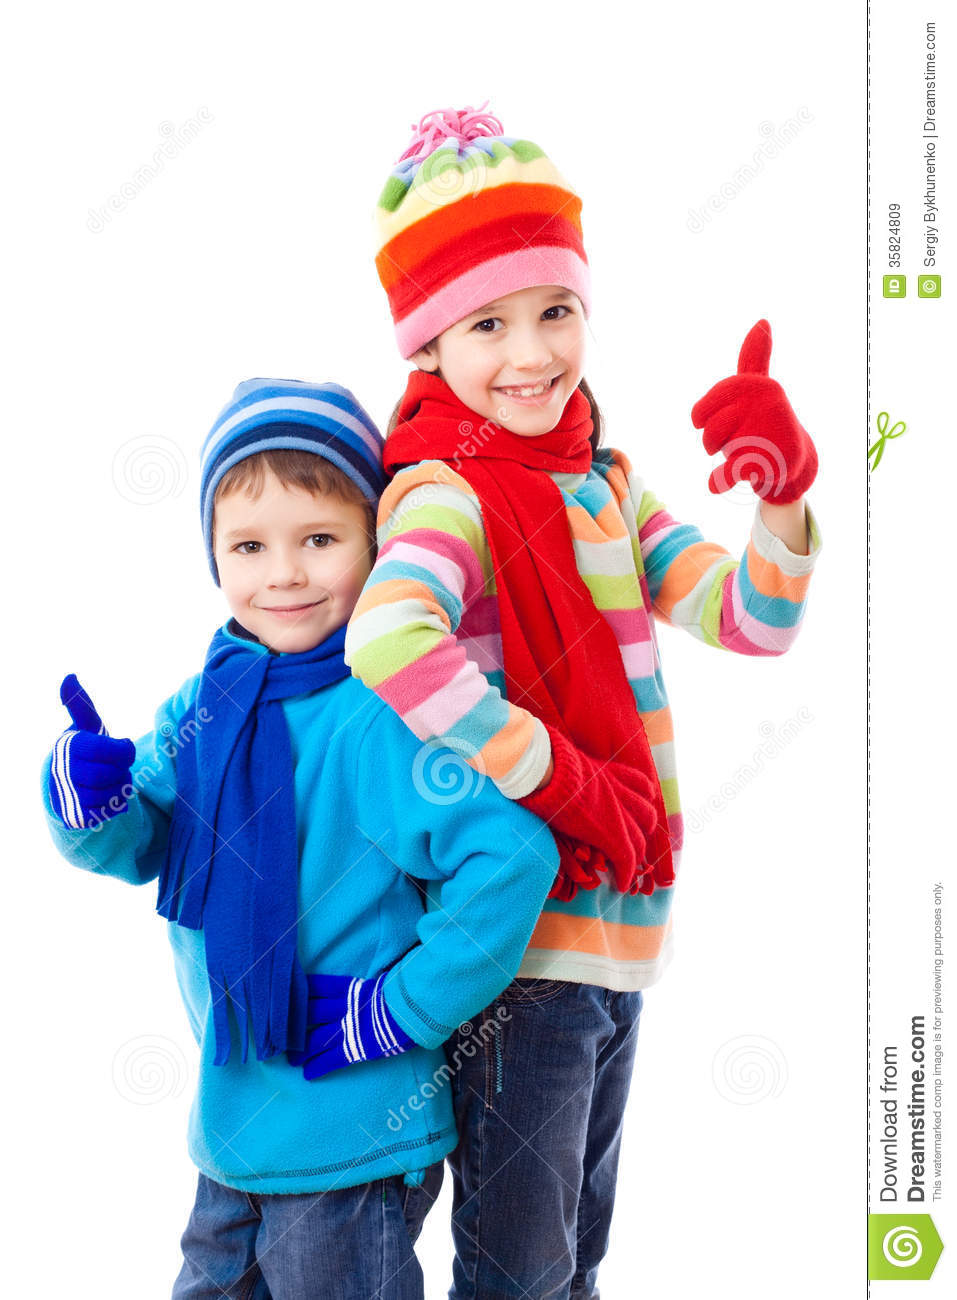 Two Kids In Winter Clothes Royalty Free Stock Images - Image: 35824809